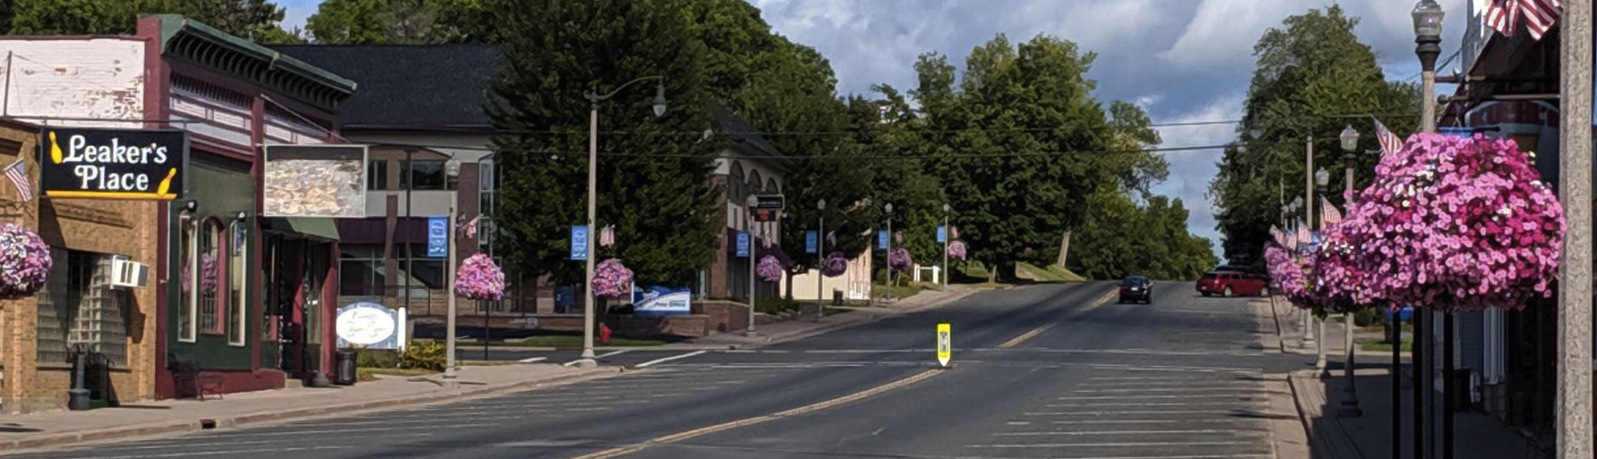 image of Main Street, Glenwood City